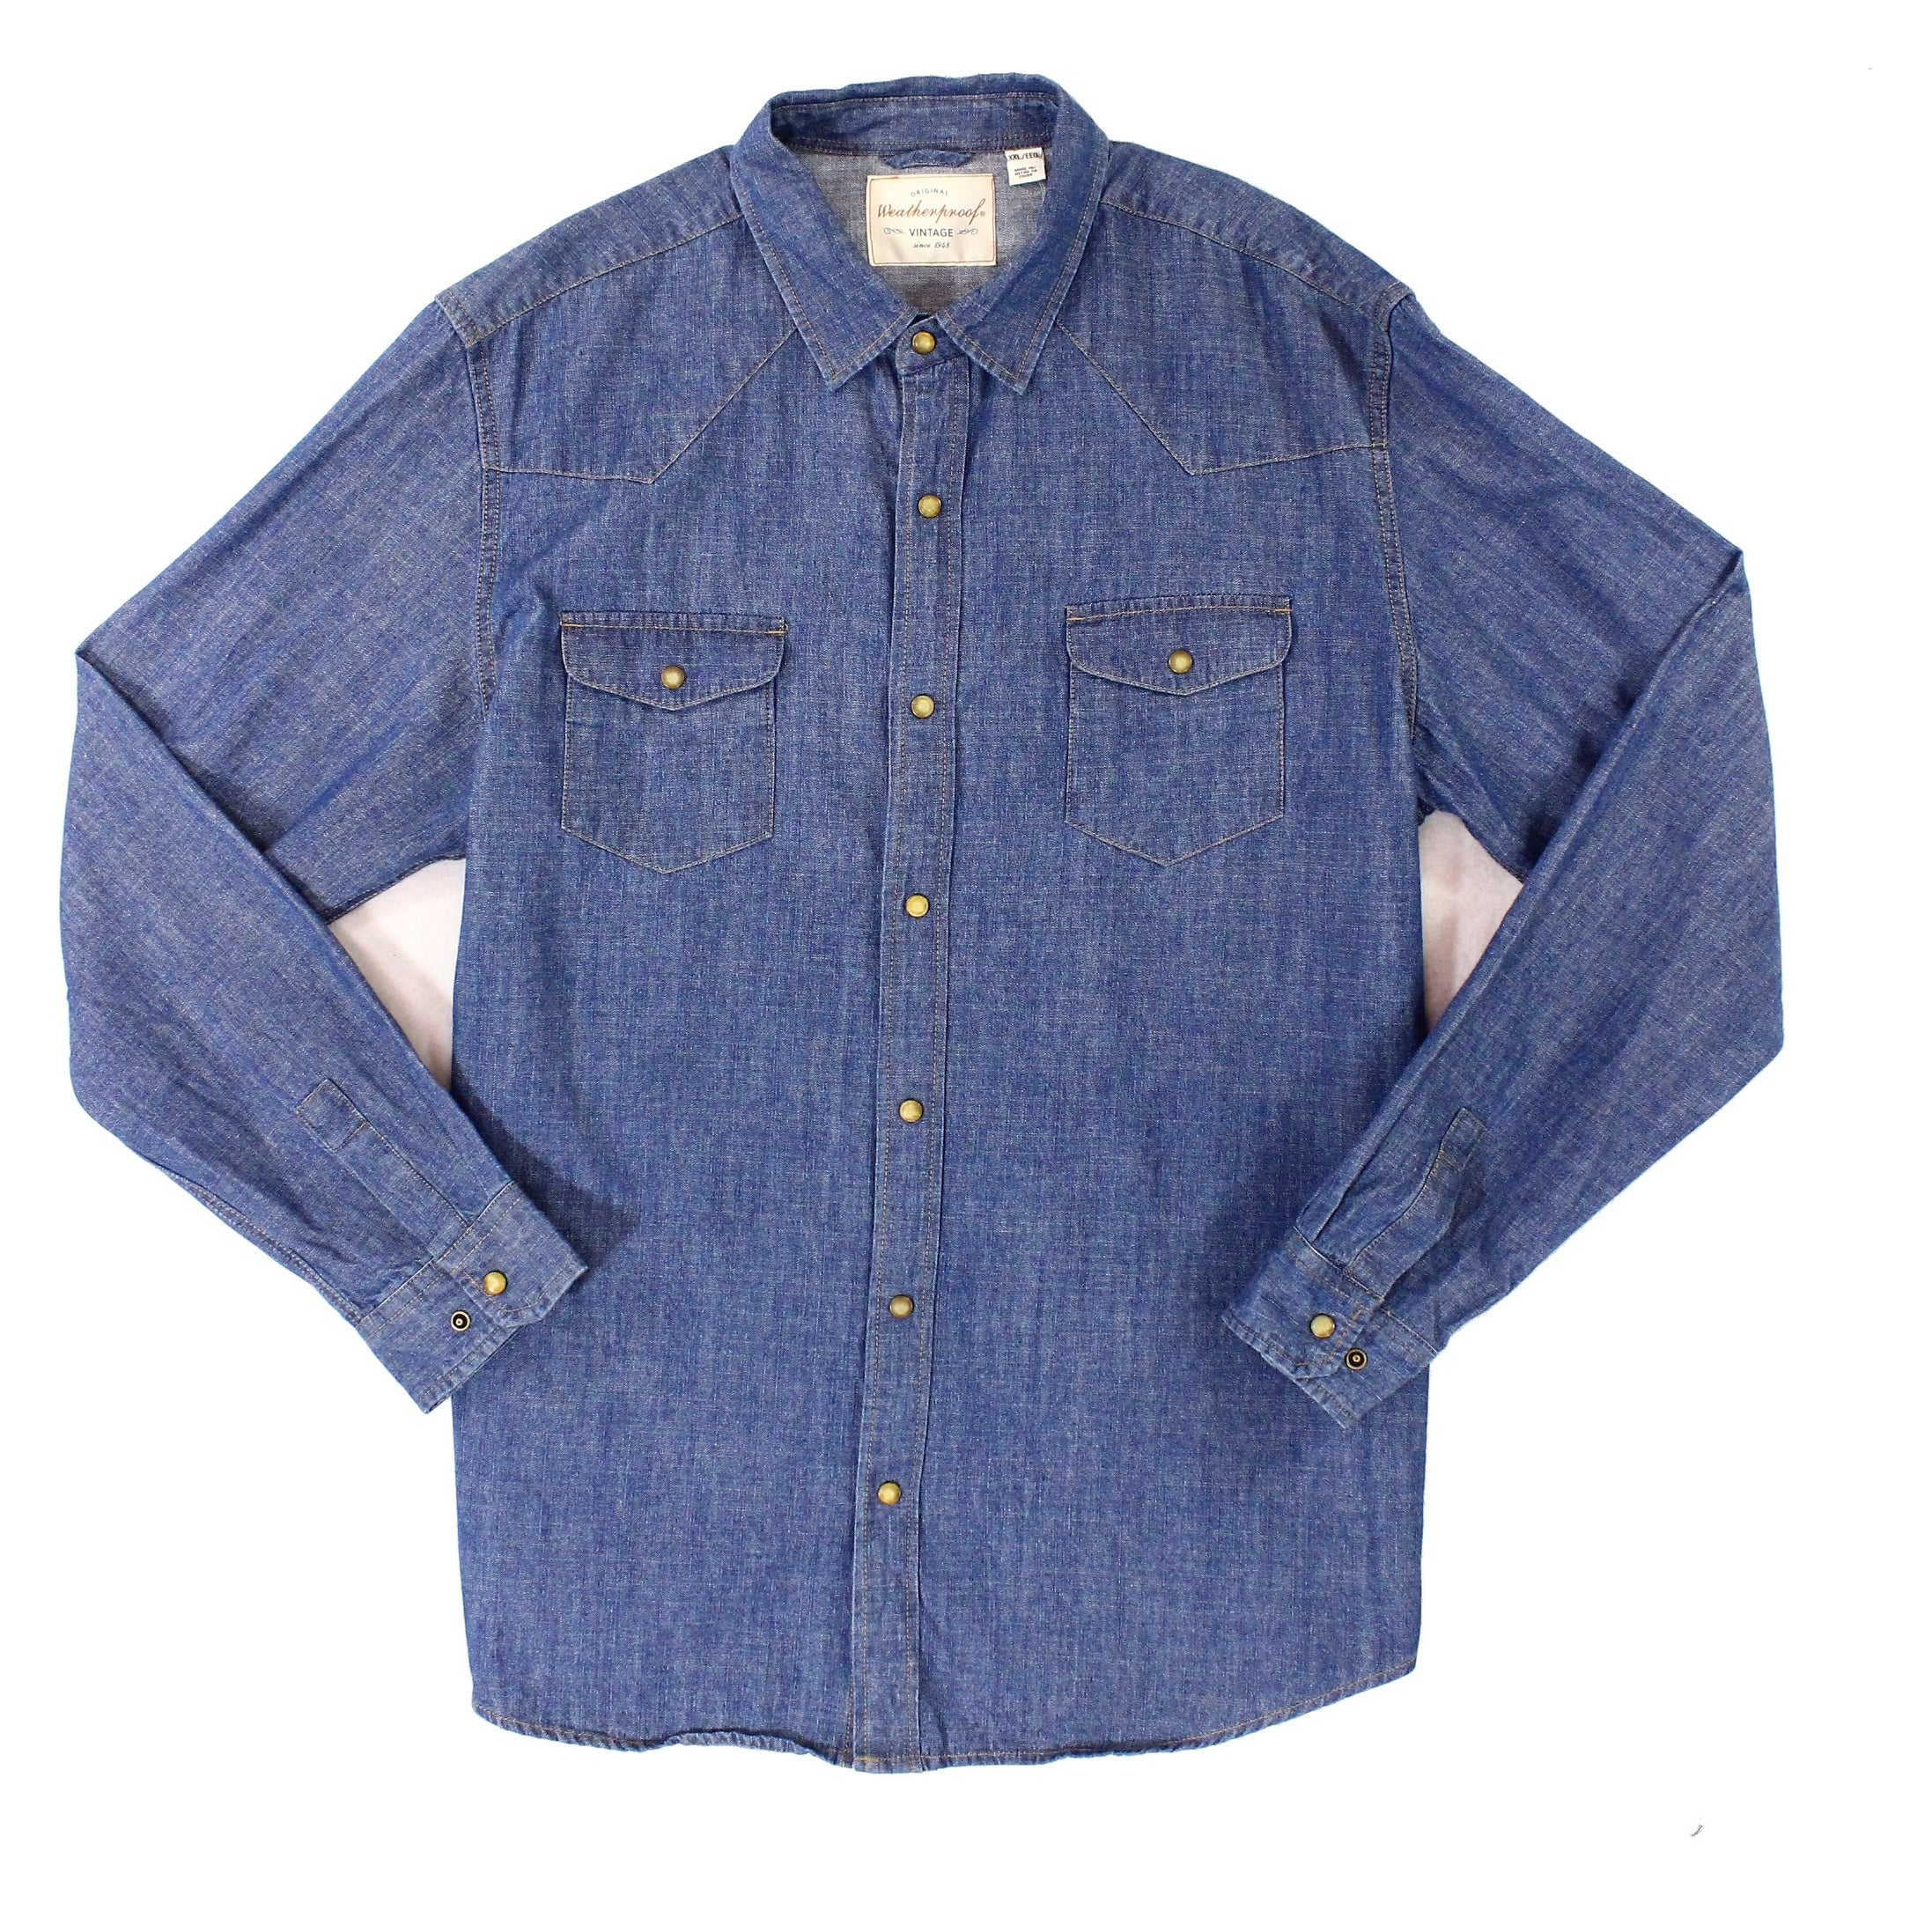 2d366ffb Shop Weatherproof Vintage Mens Denim Button Down Shirt - Free Shipping On  Orders Over $45 - Overstock.com - 22275758